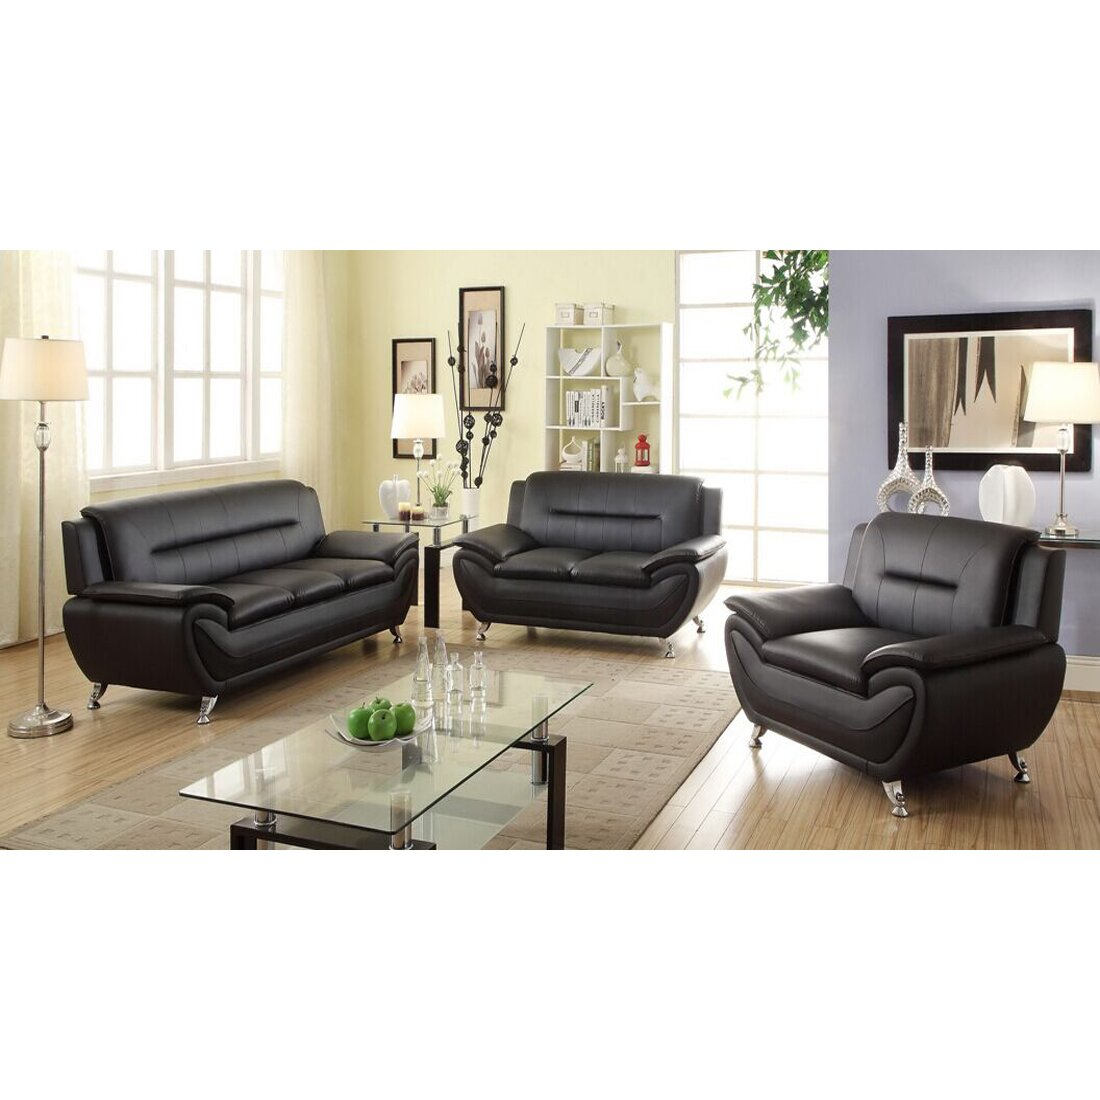 Living in style sophie 3 piece living room set reviews for Wg r living room sets